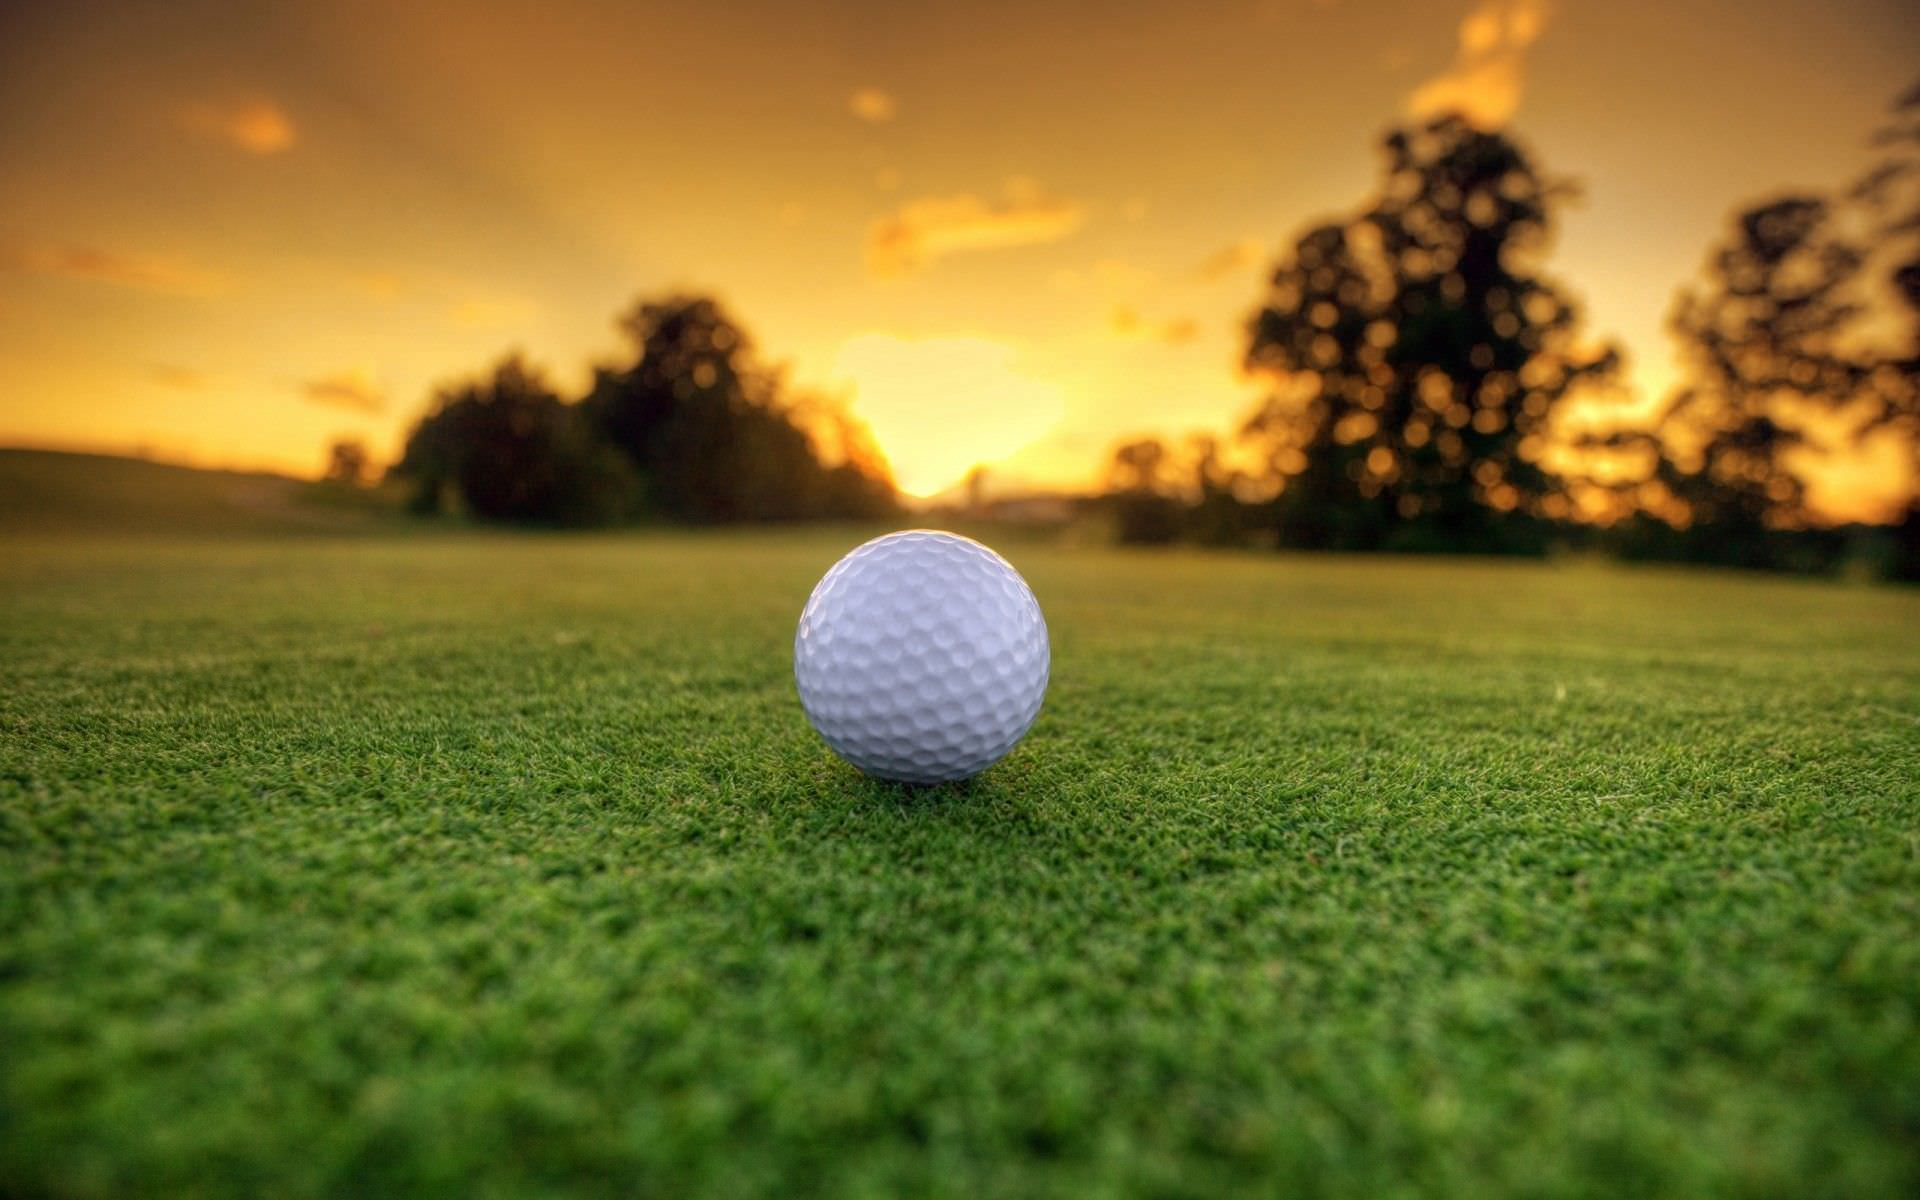 Elegant HD Wallpaper of Golf Ground